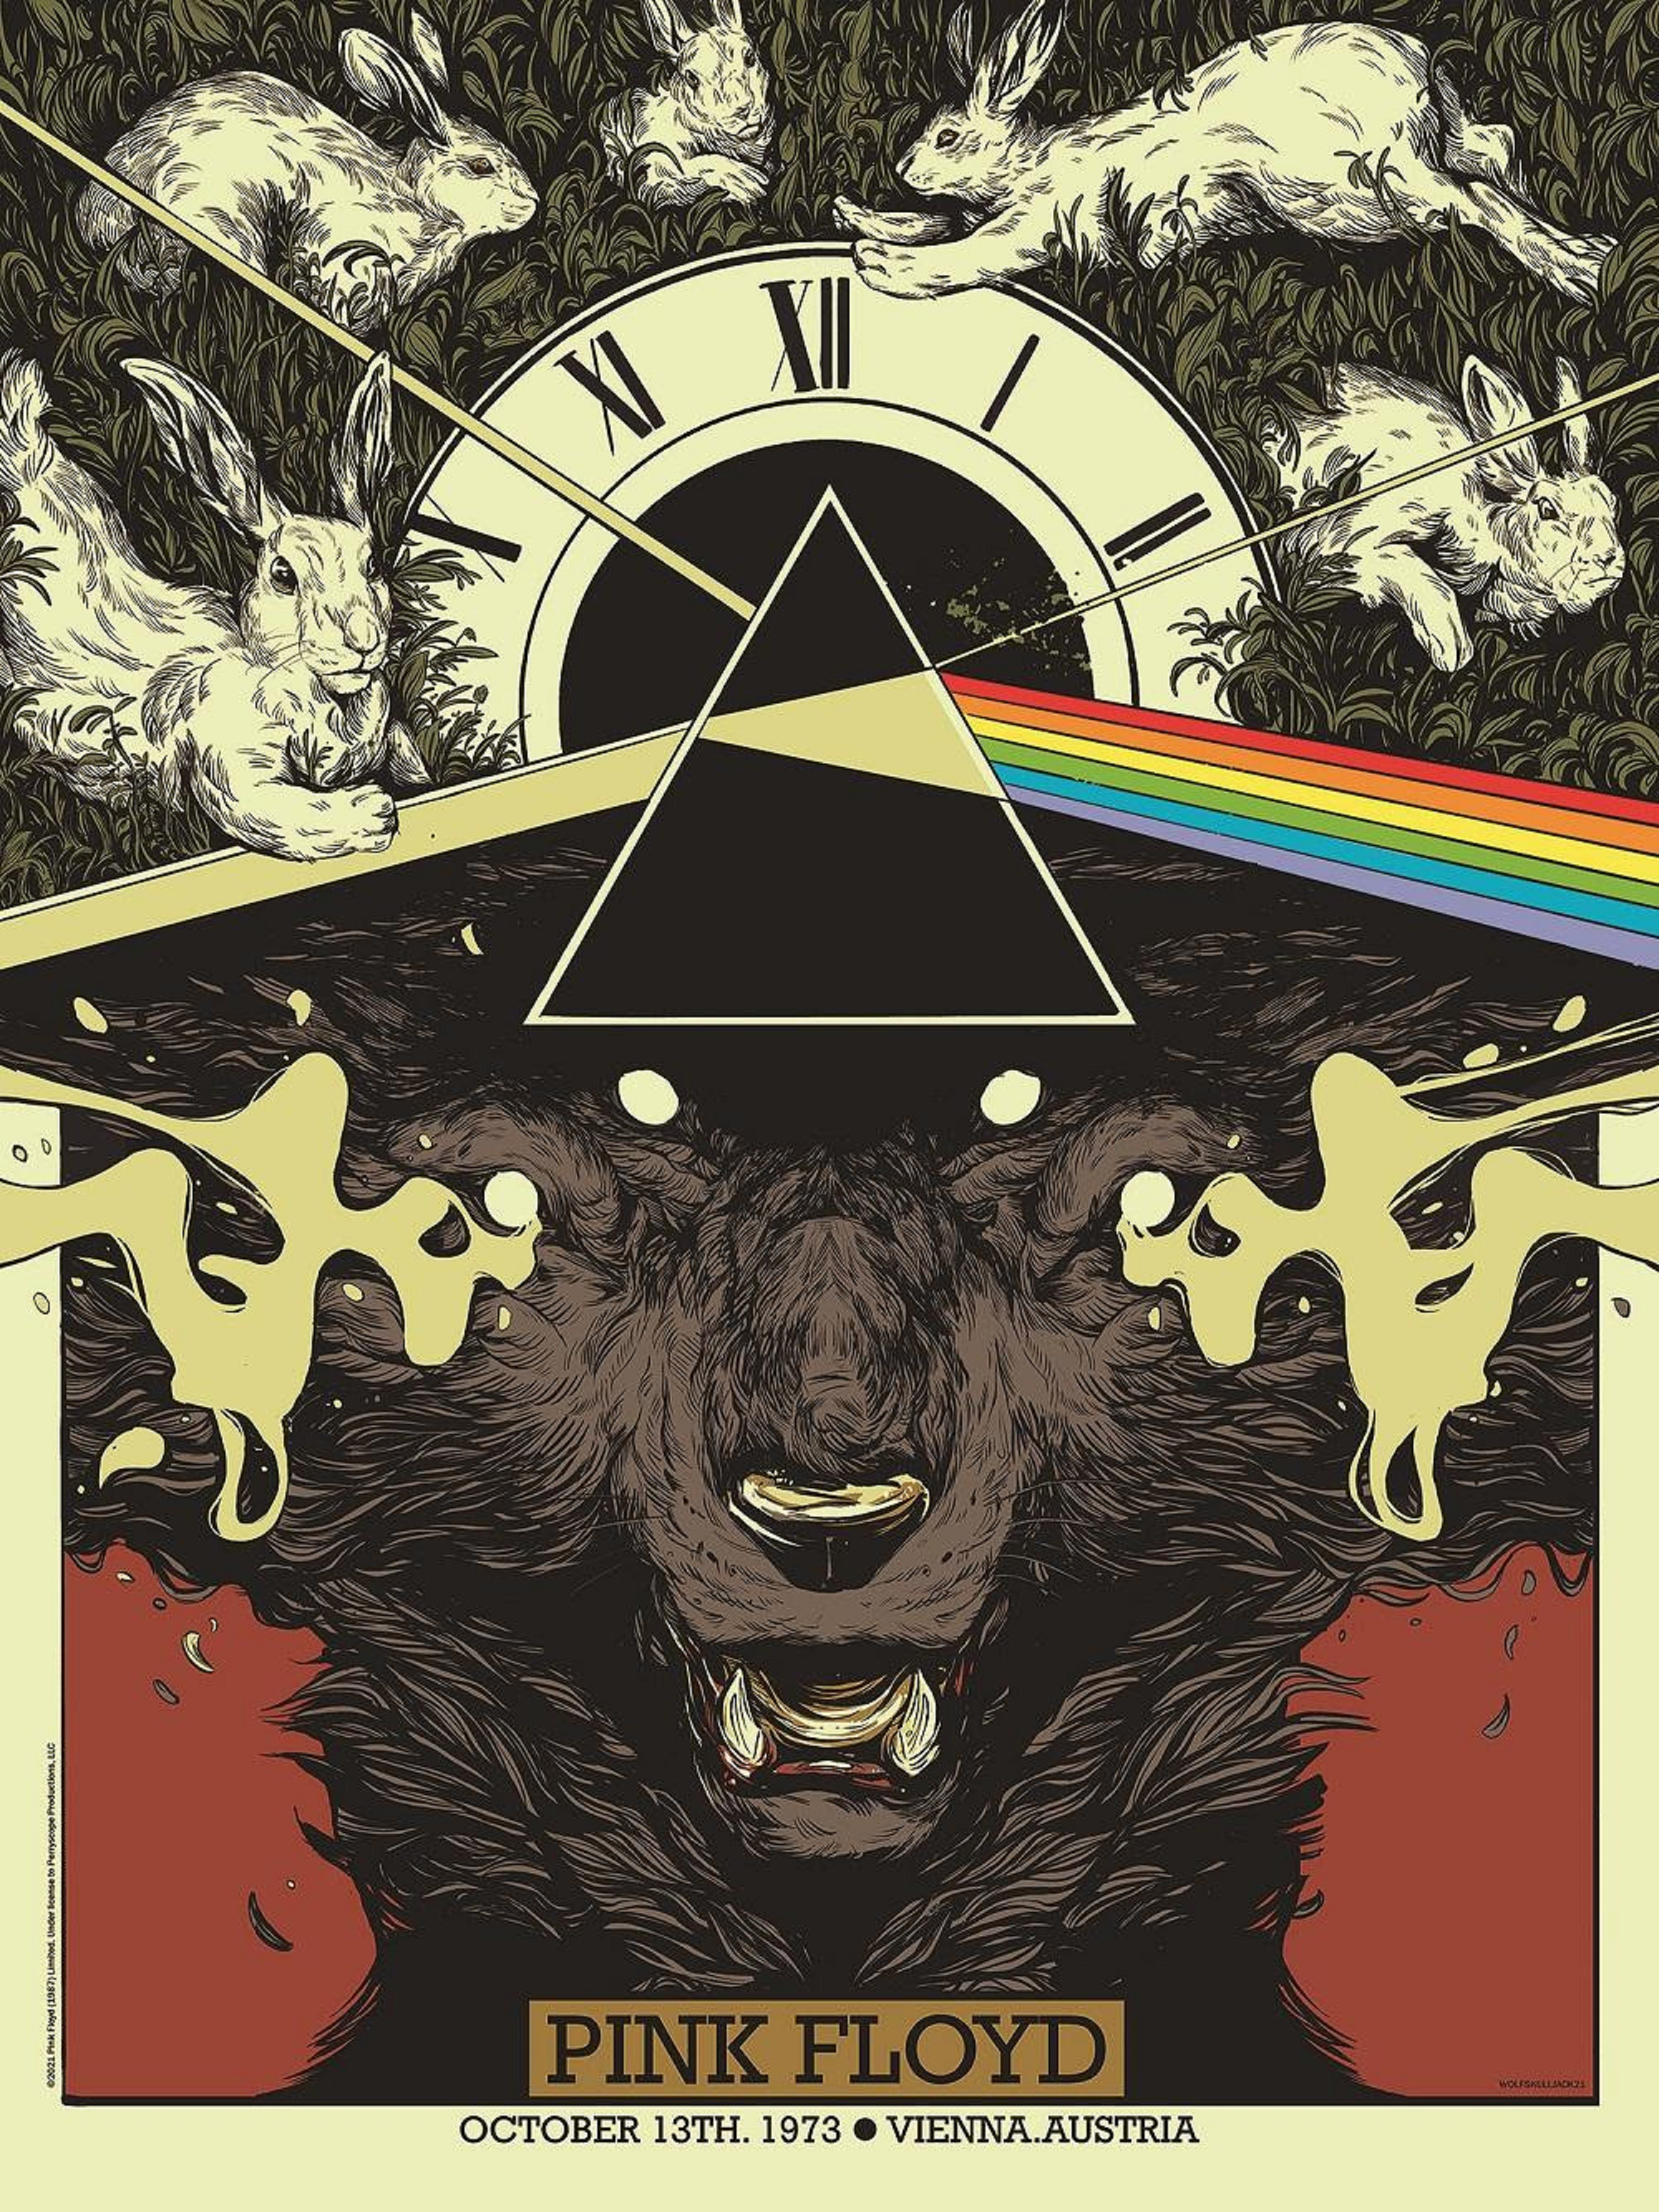 ECHO releases Pink Floyd limited edition print series - available today